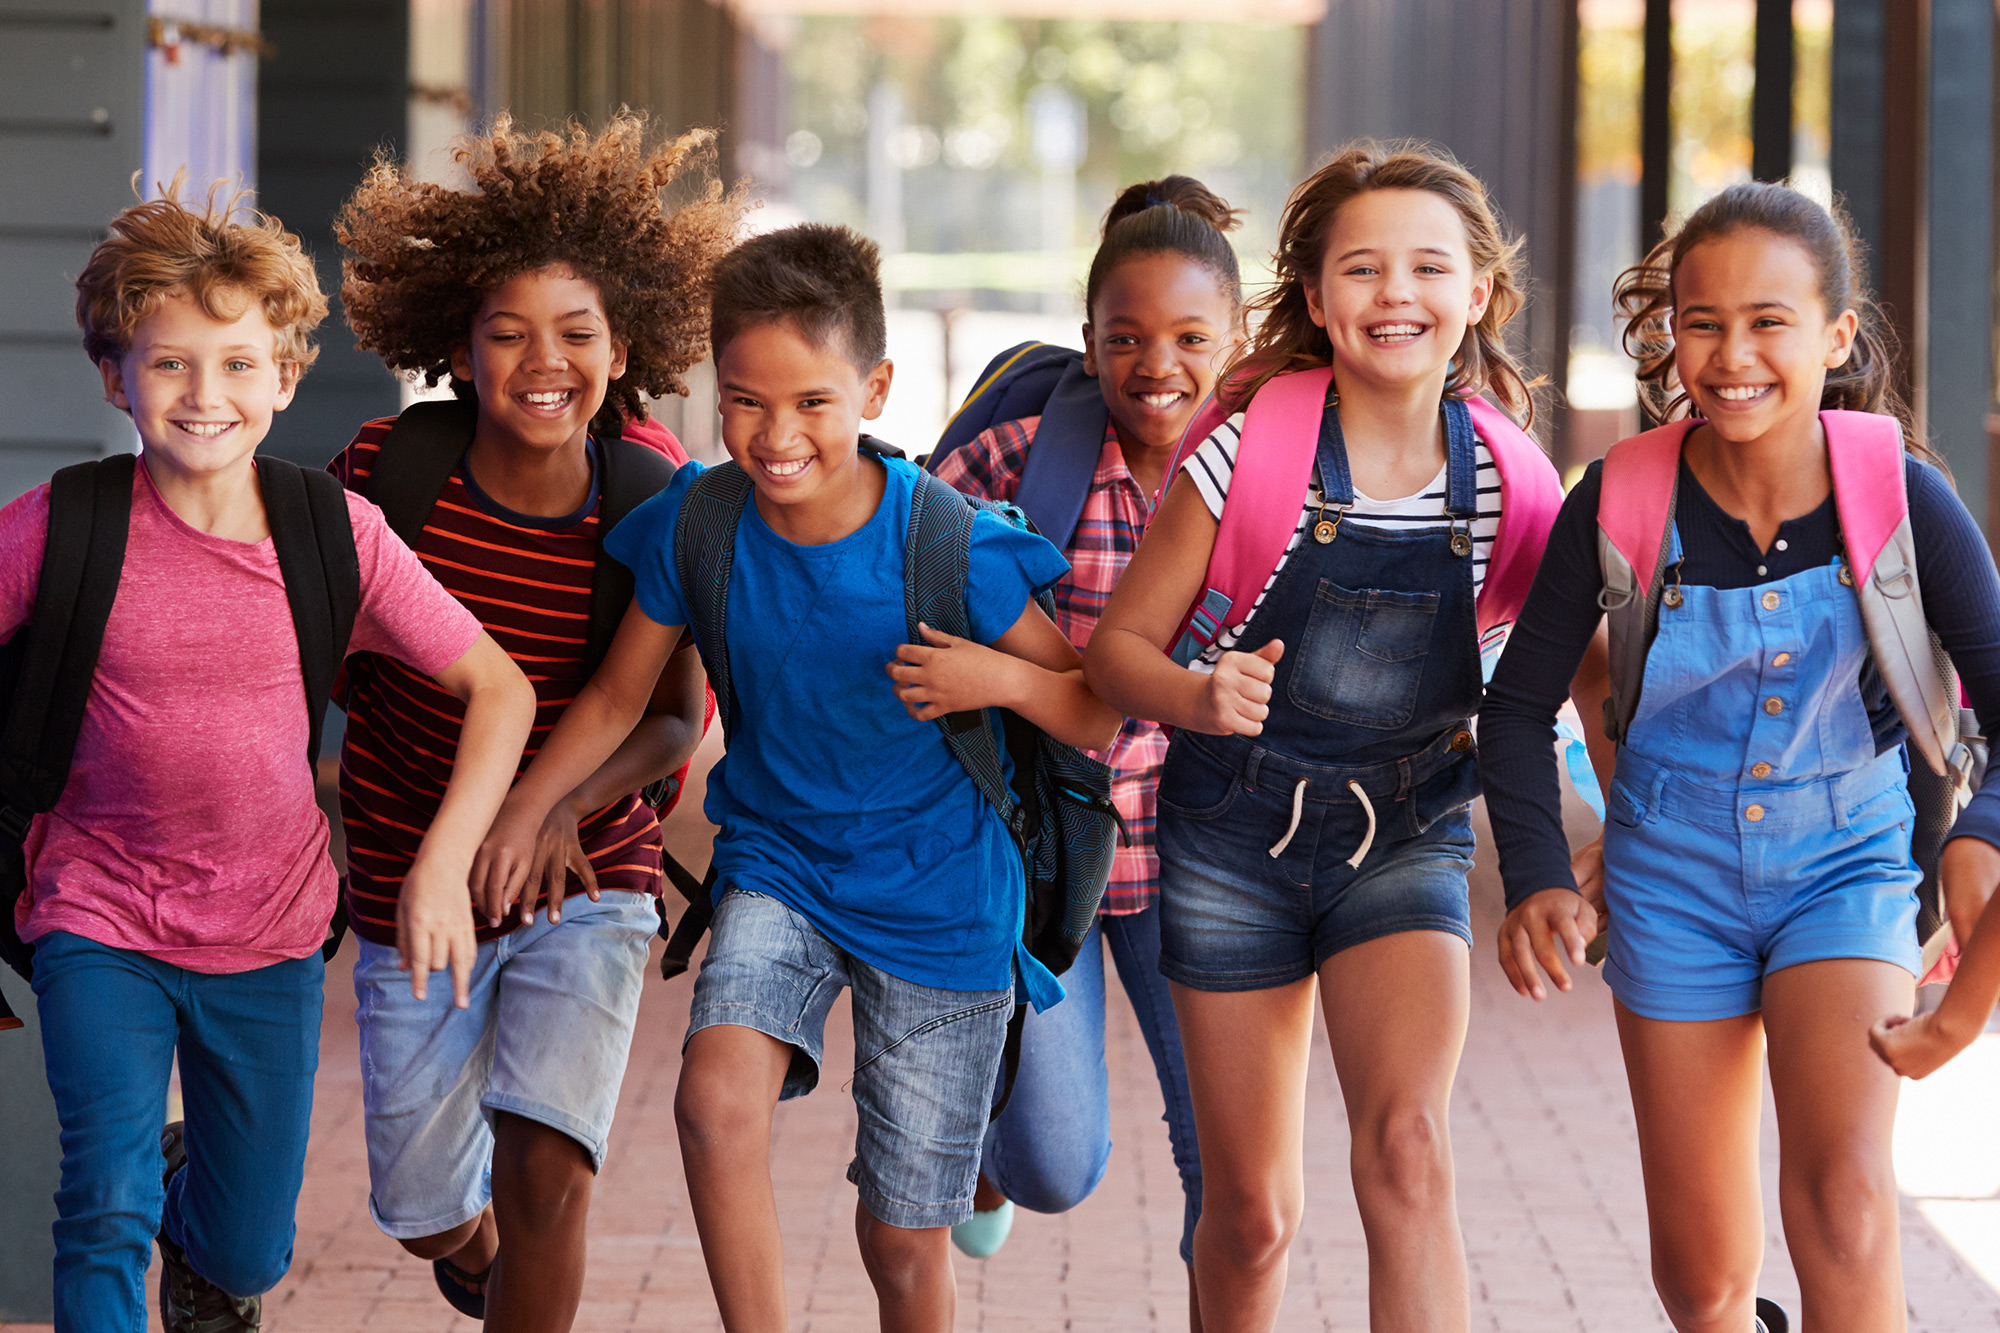 Diverse students happily running in school